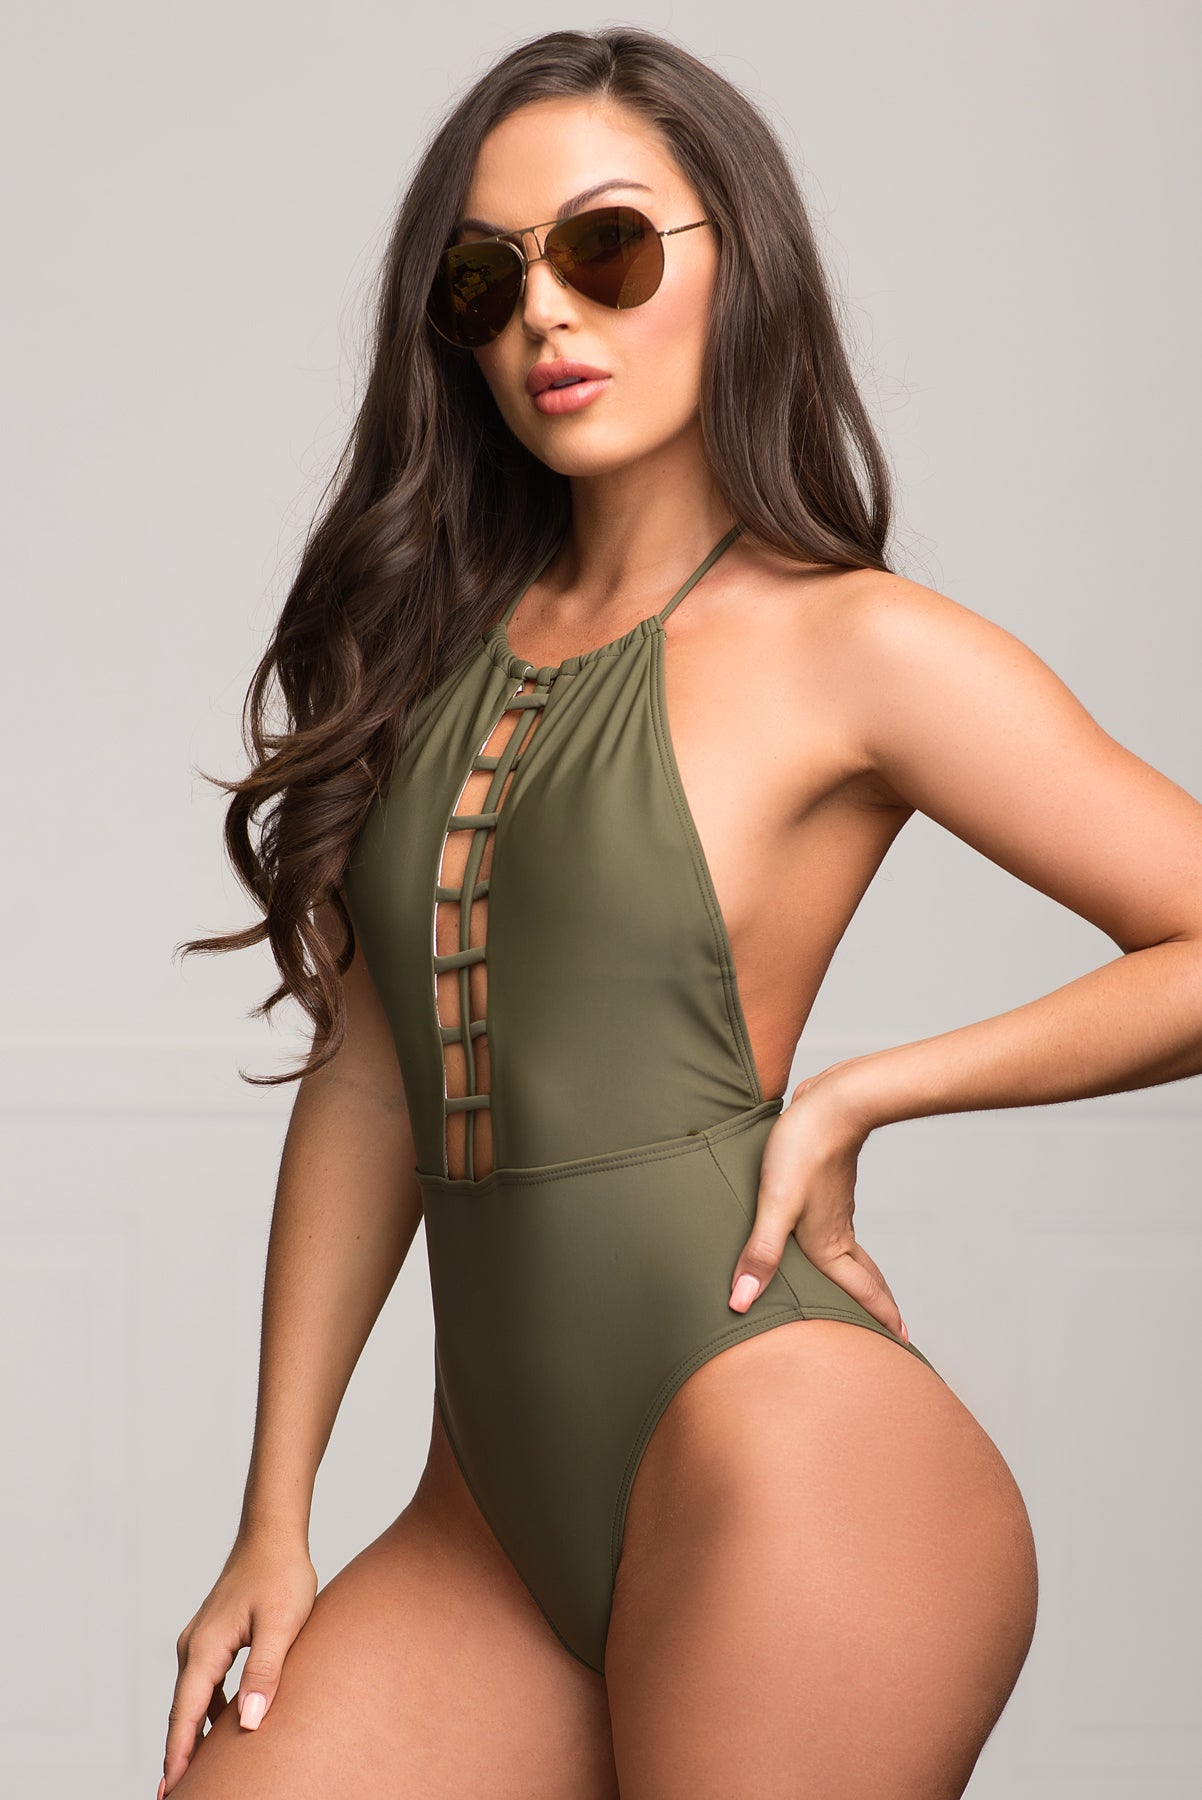 West Bay One Piece Swimsuit- Olive